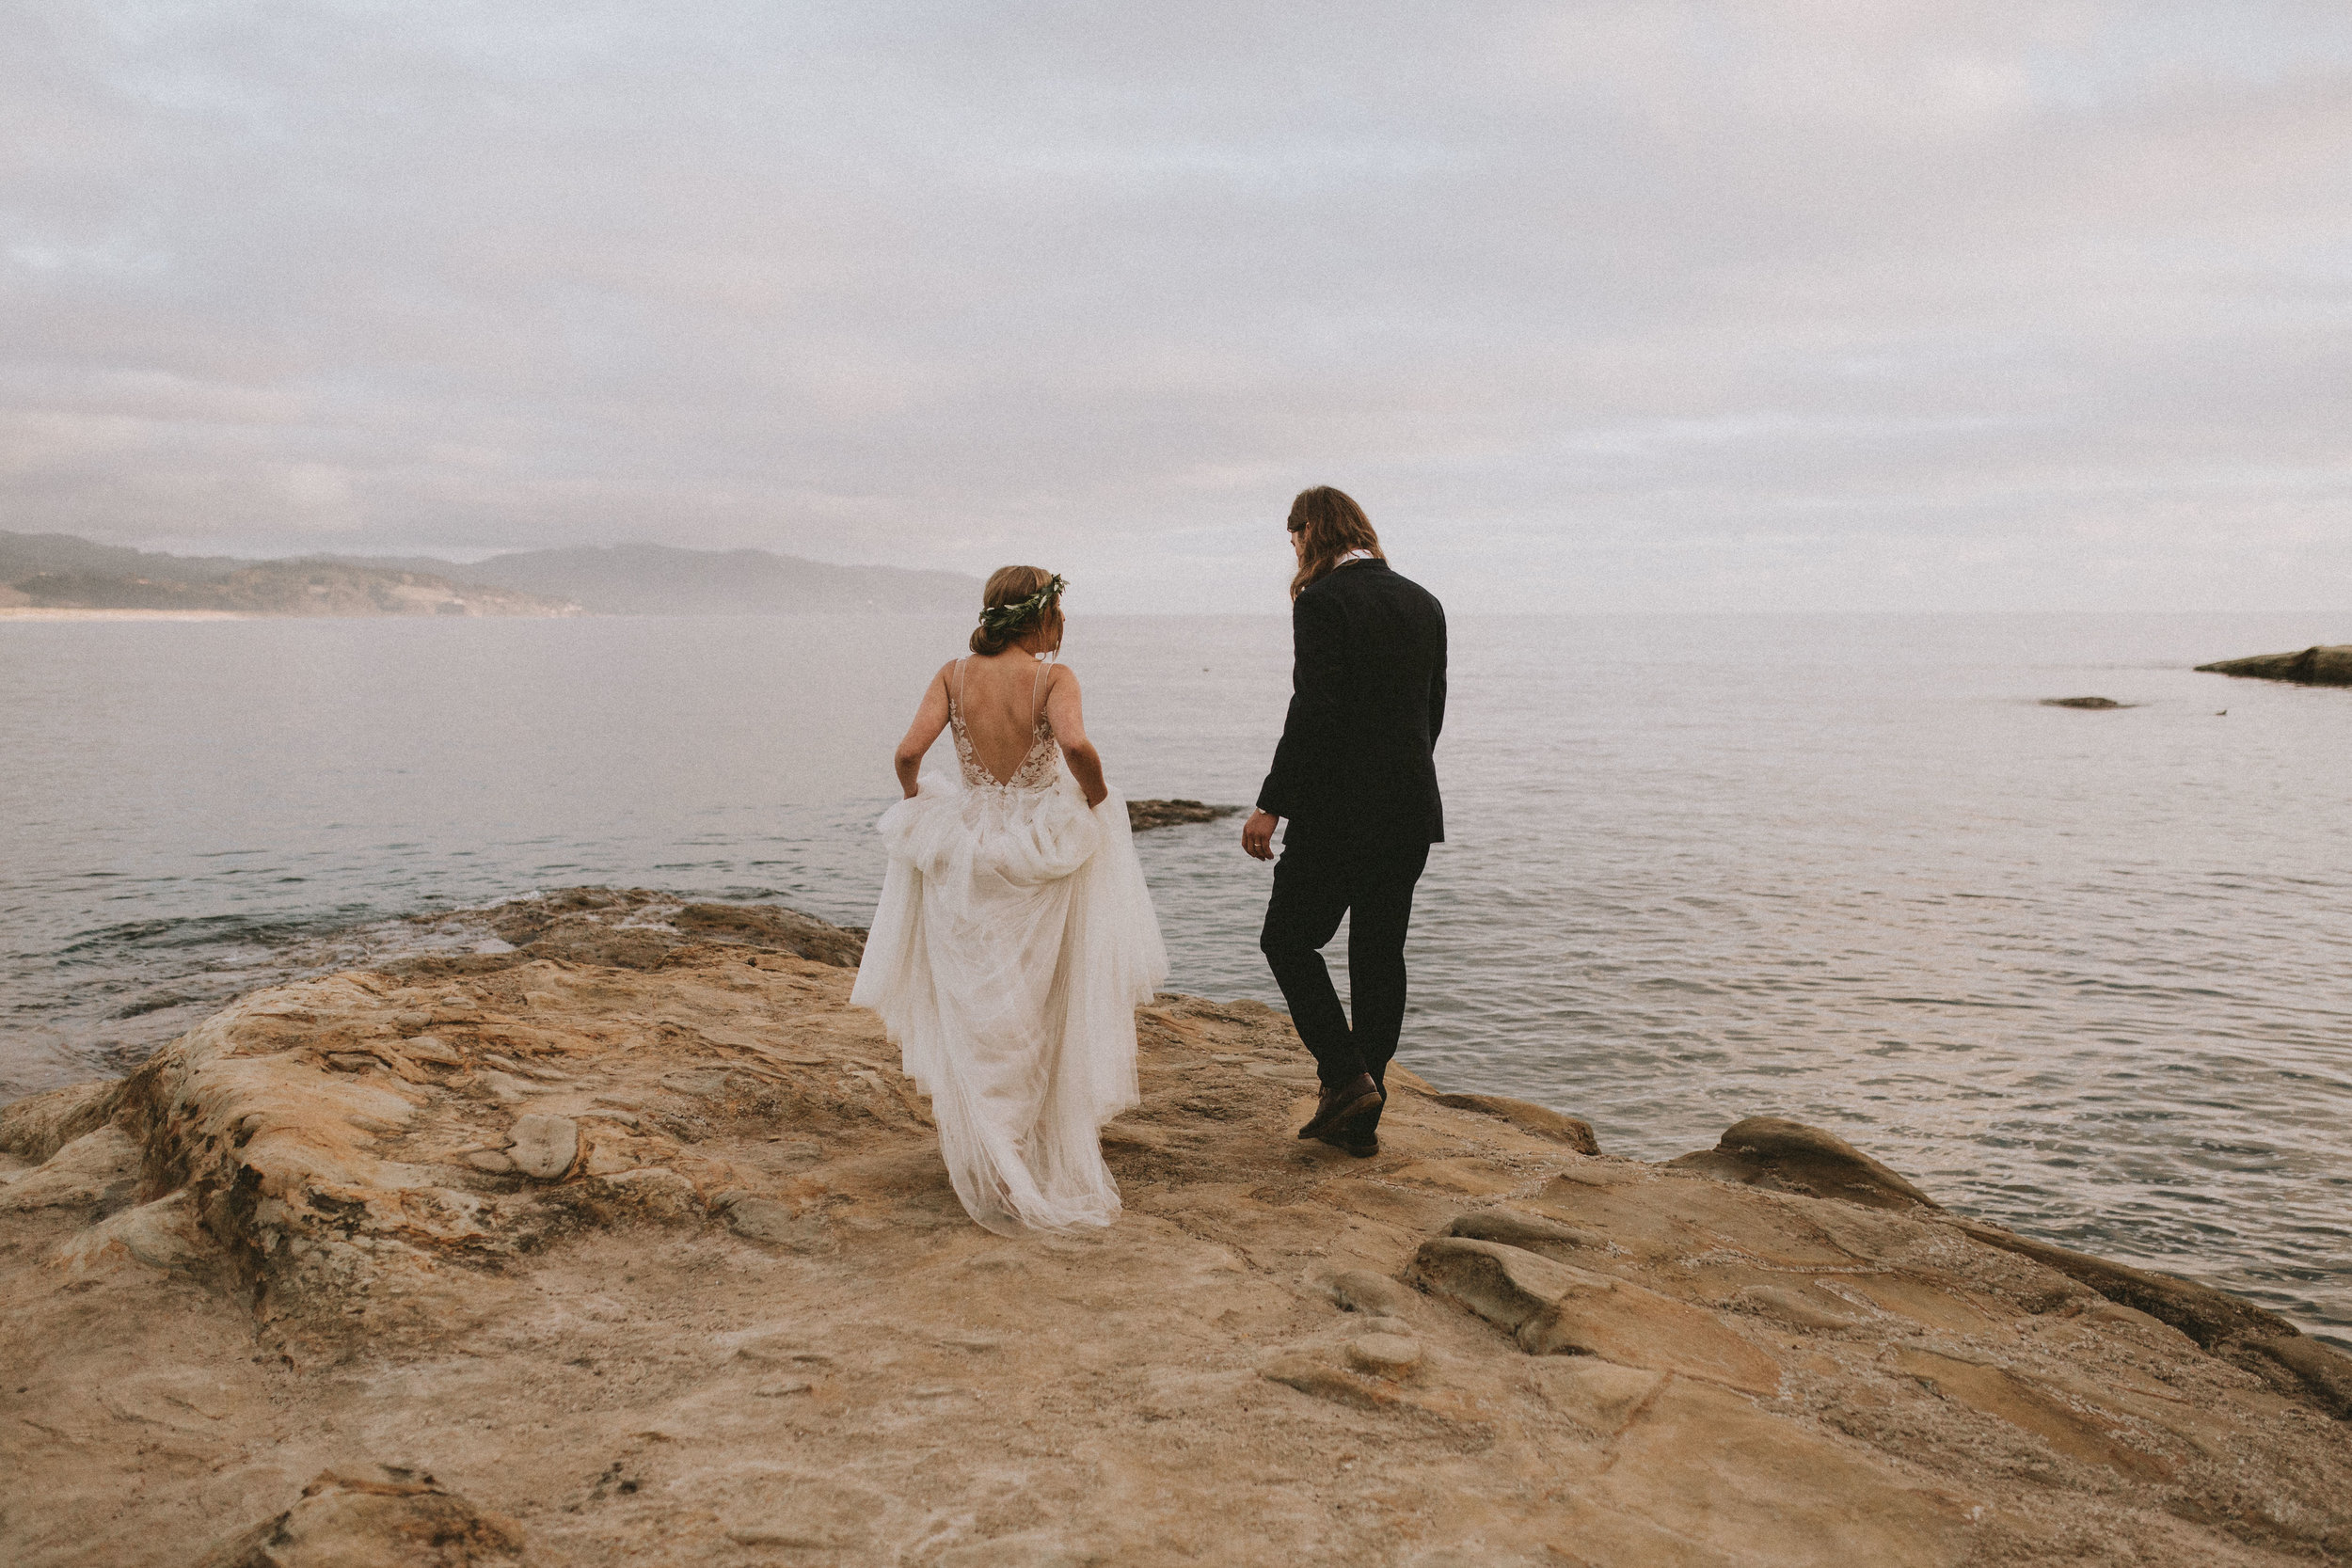 ELOPEMENTS + SMALL WEDDINGS - packages starting at $3,950